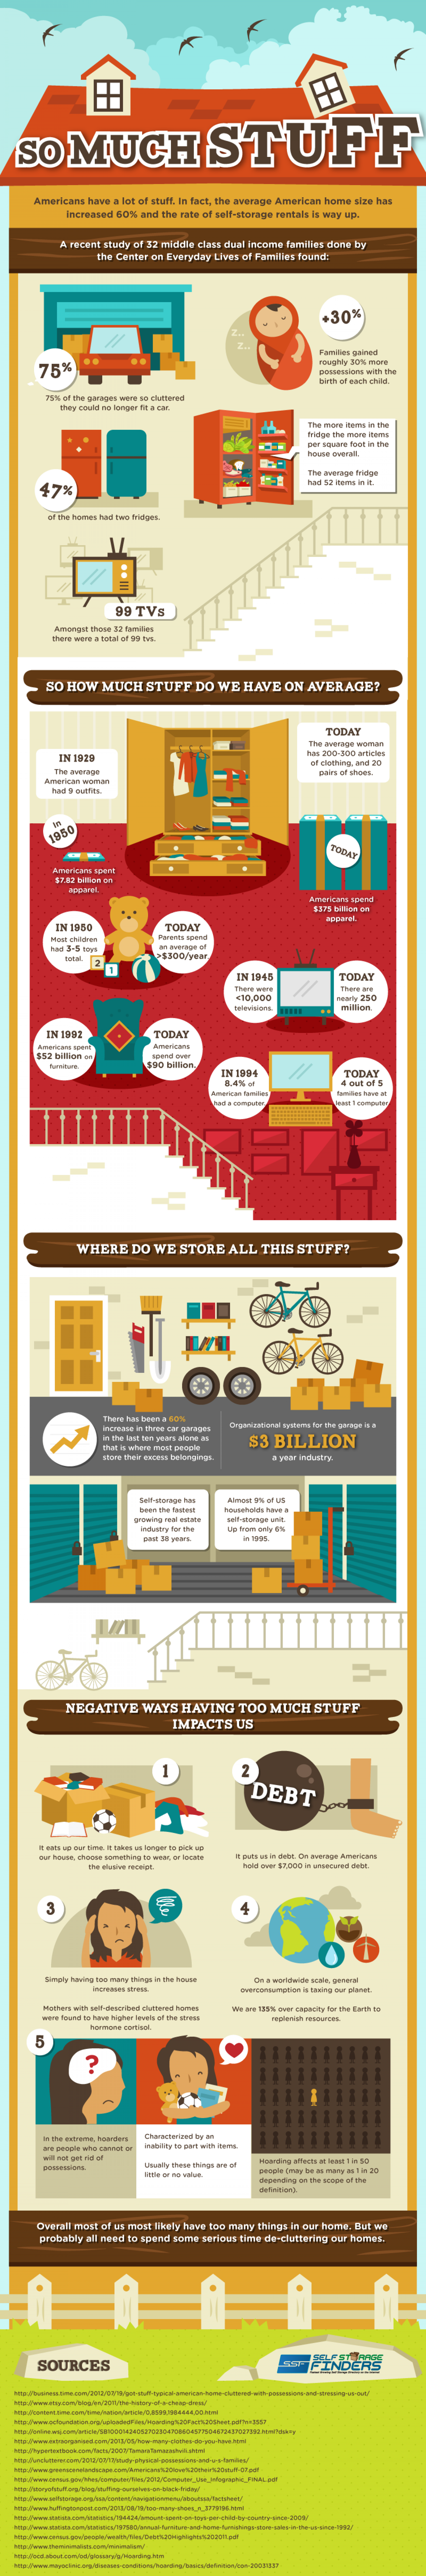 So Much Stuff! Infographic